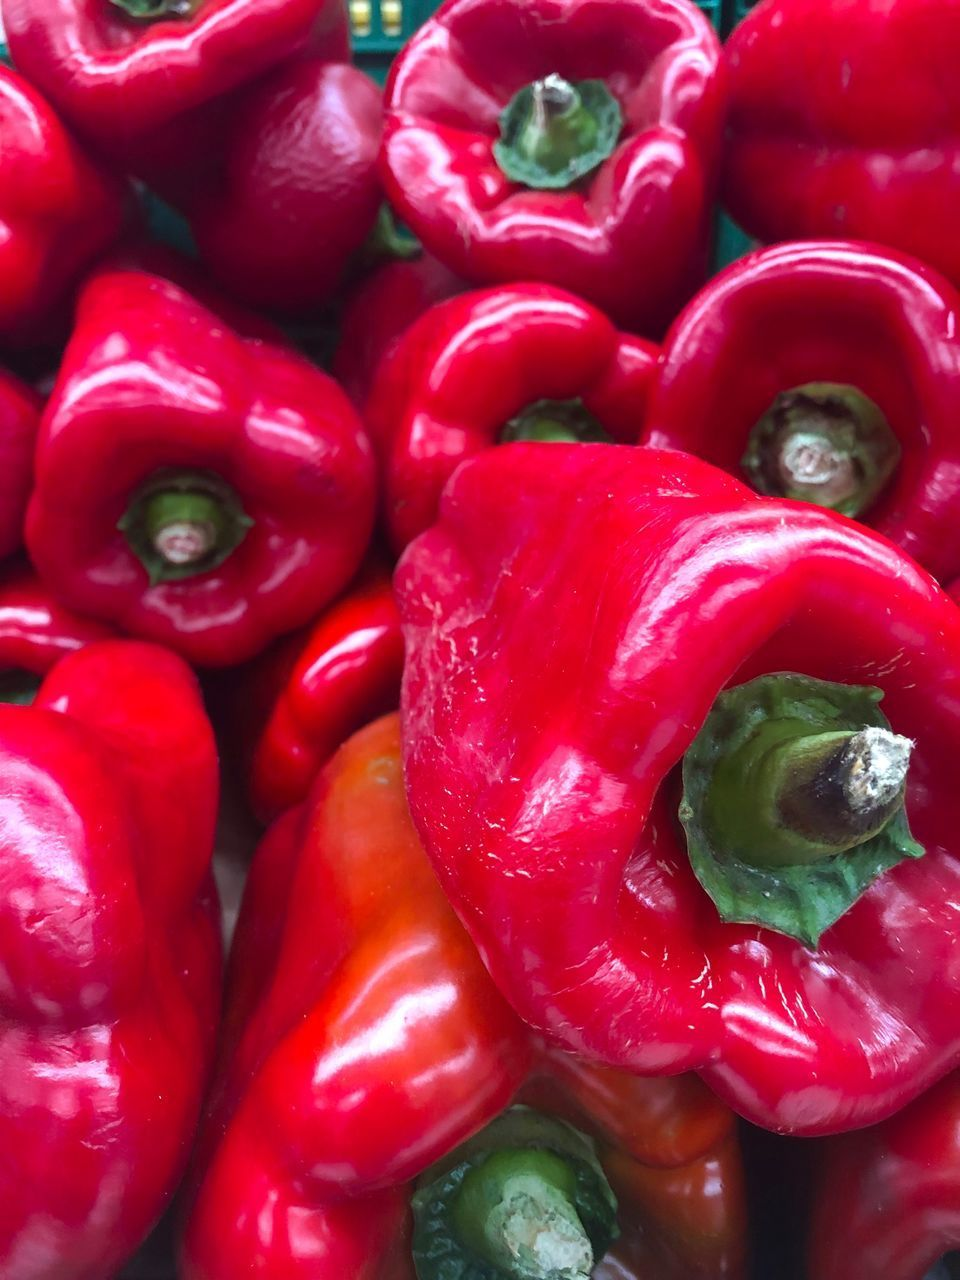 red, food and drink, vegetable, food, pepper, full frame, backgrounds, freshness, large group of objects, wellbeing, bell pepper, healthy eating, market, red bell pepper, abundance, retail, still life, close-up, spice, for sale, no people, paprika, ripe, temptation